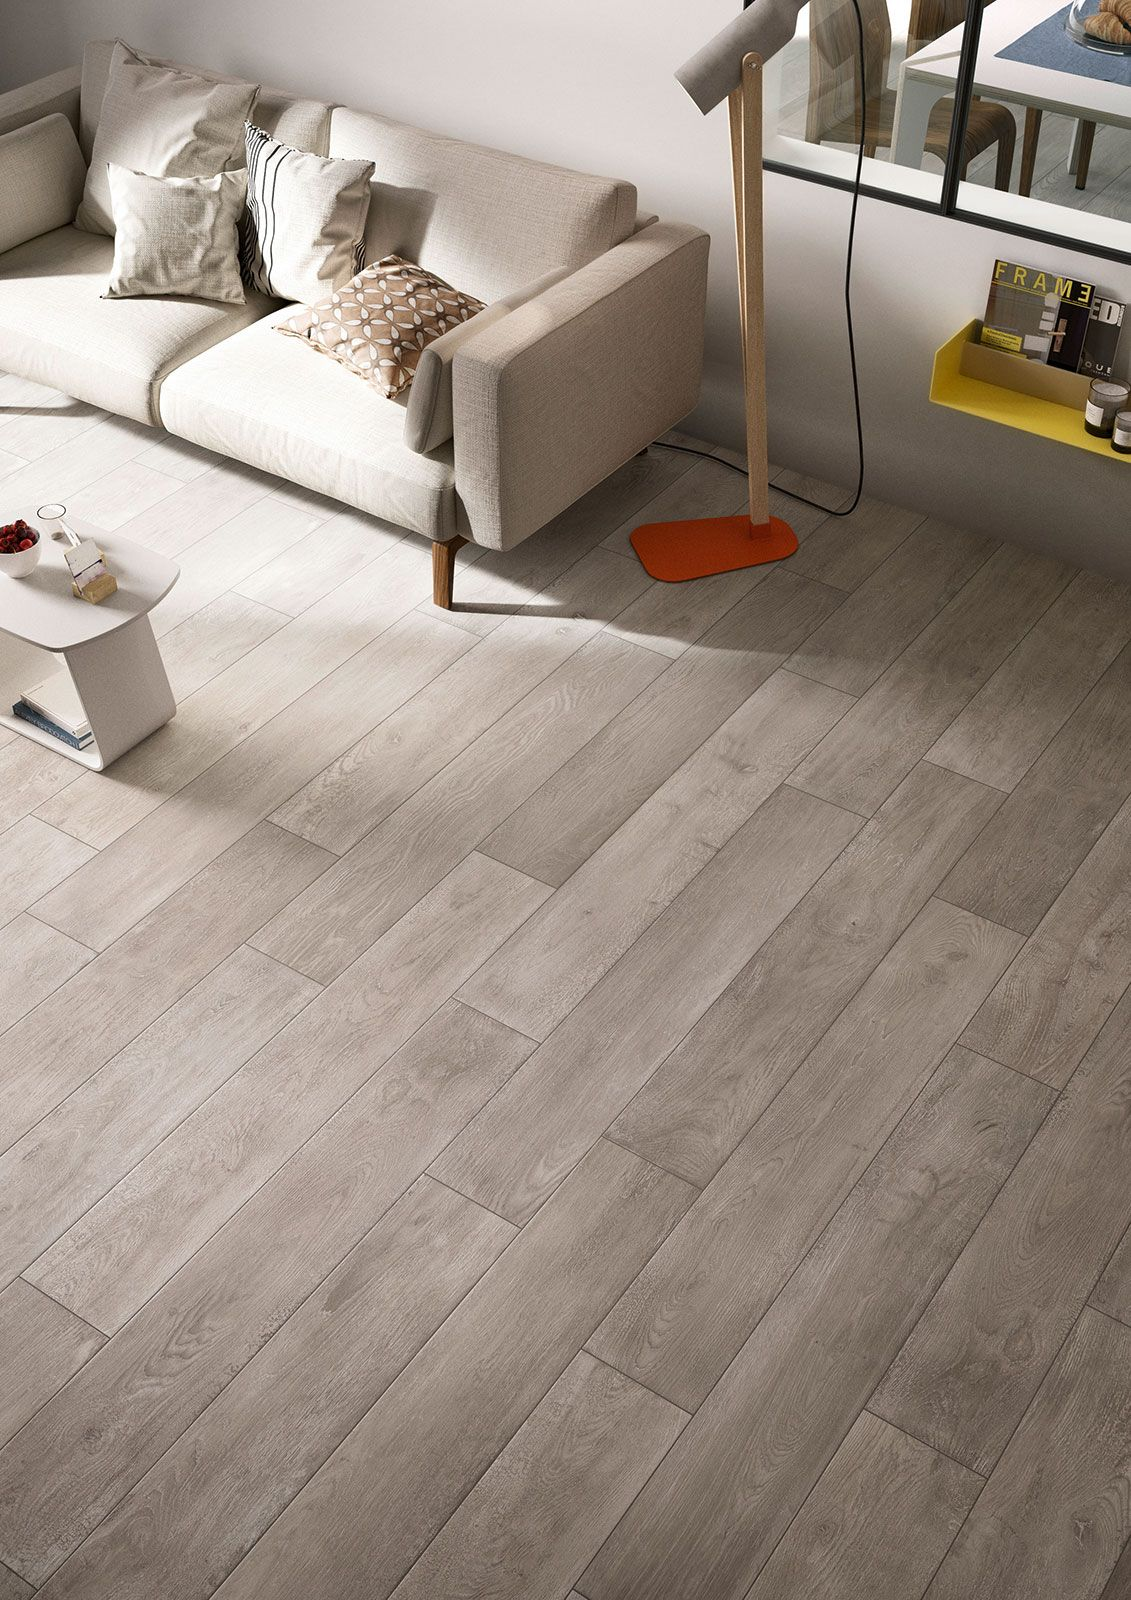 Treverktime Ceramic Tiles Marazzi Flooring Pinterest - Ceramic tile stores michigan